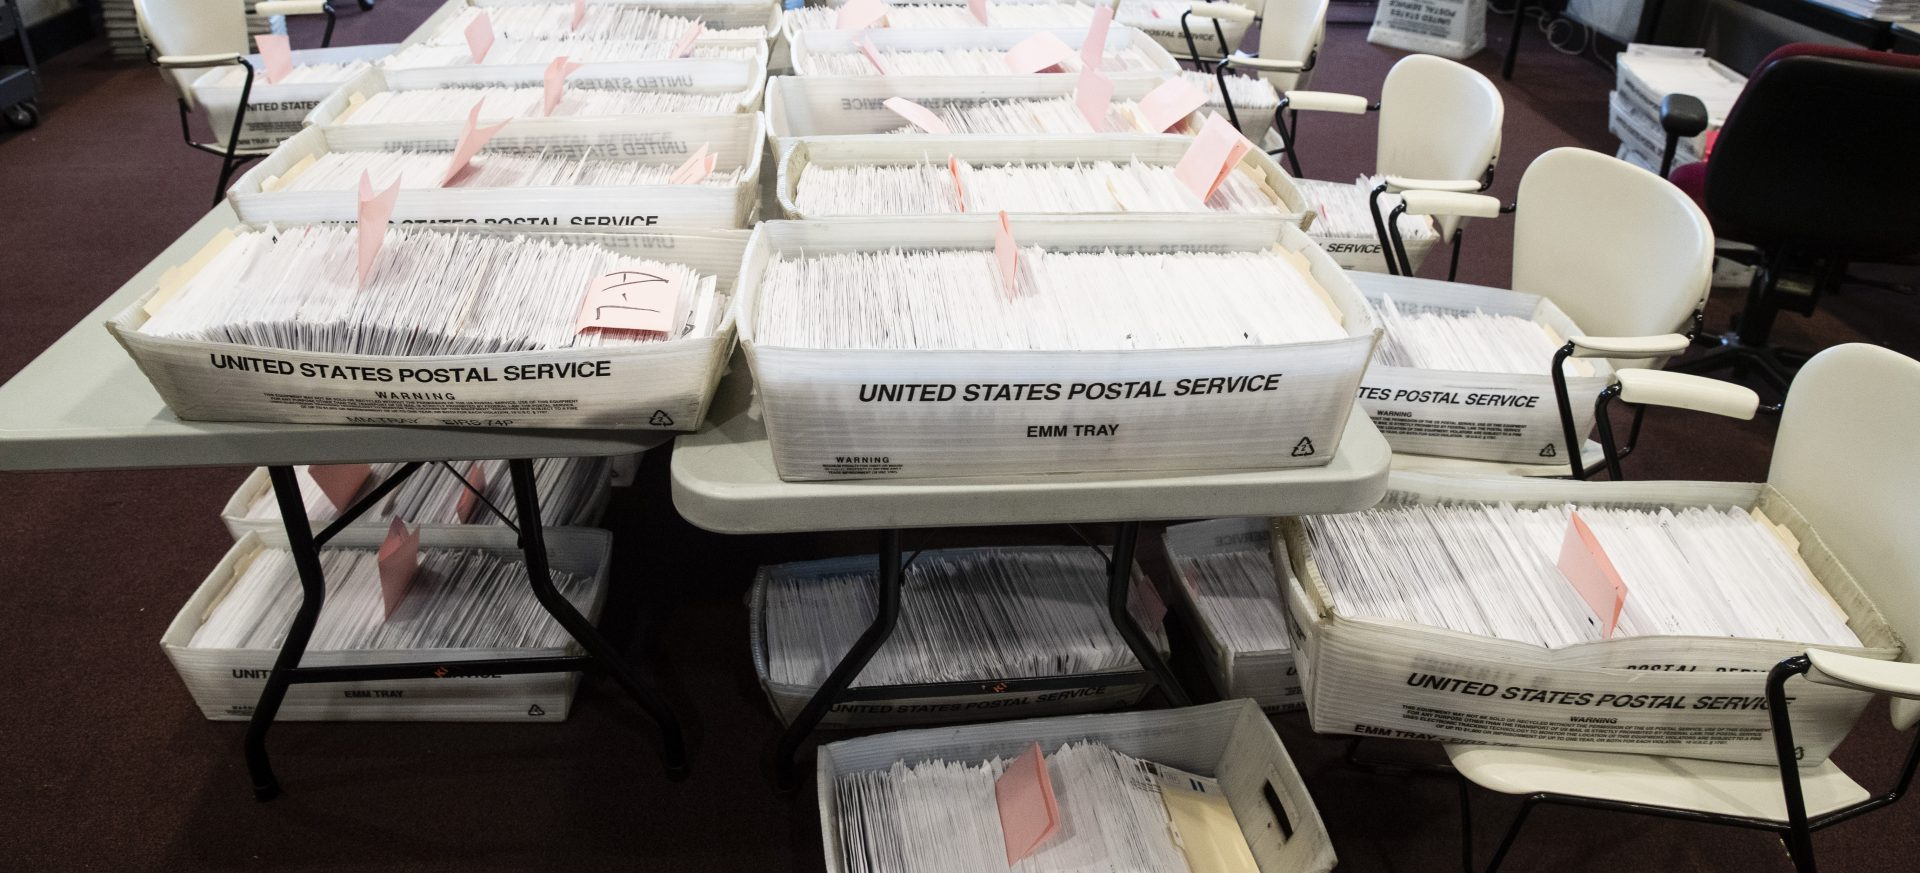 Processed mail-in ballots are seen at the Chester County Voter Services office in West Chester, Pa., prior to the primary election, Thursday, May 28, 2020.